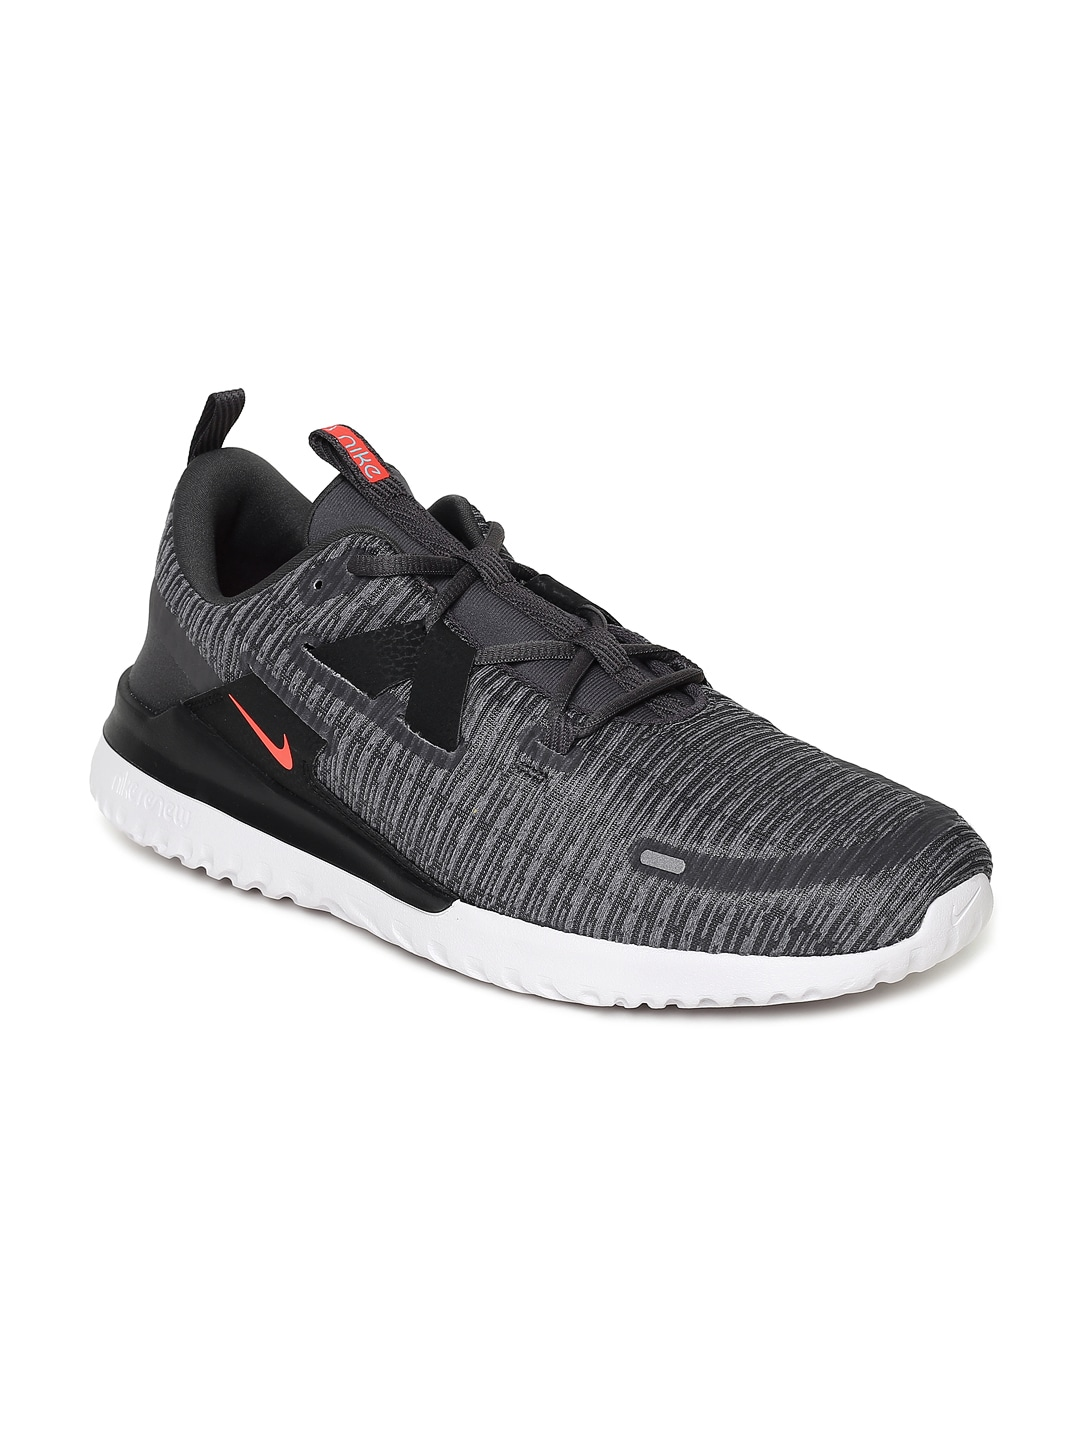 premium selection aab37 ed1ad Sports Shoes for Men - Buy Men Sports Shoes Online in India - Myntra